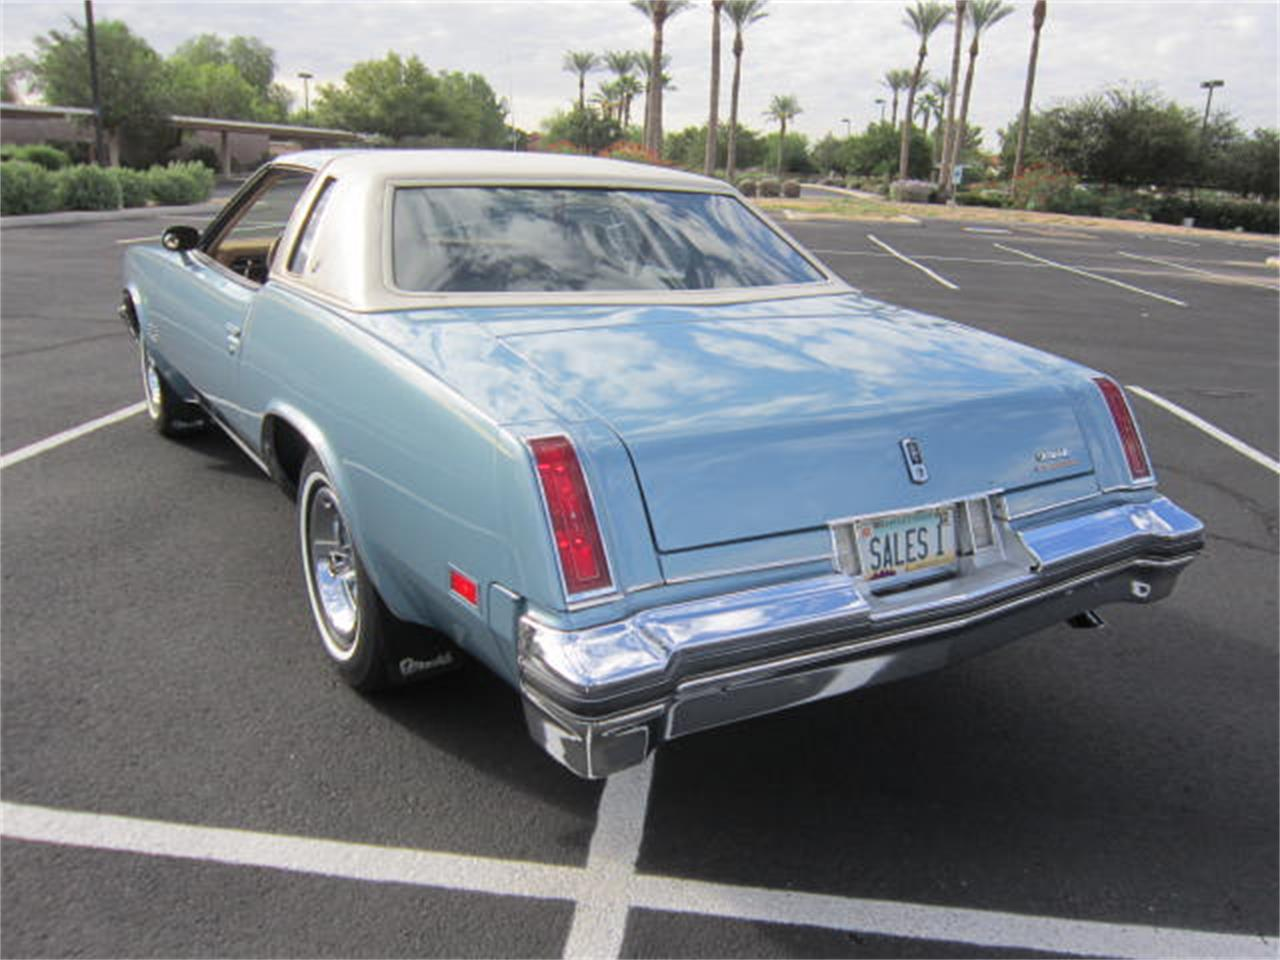 Large Picture of 1977 Cutlass located in Arizona - $15,000.00 Offered by a Private Seller - DISY